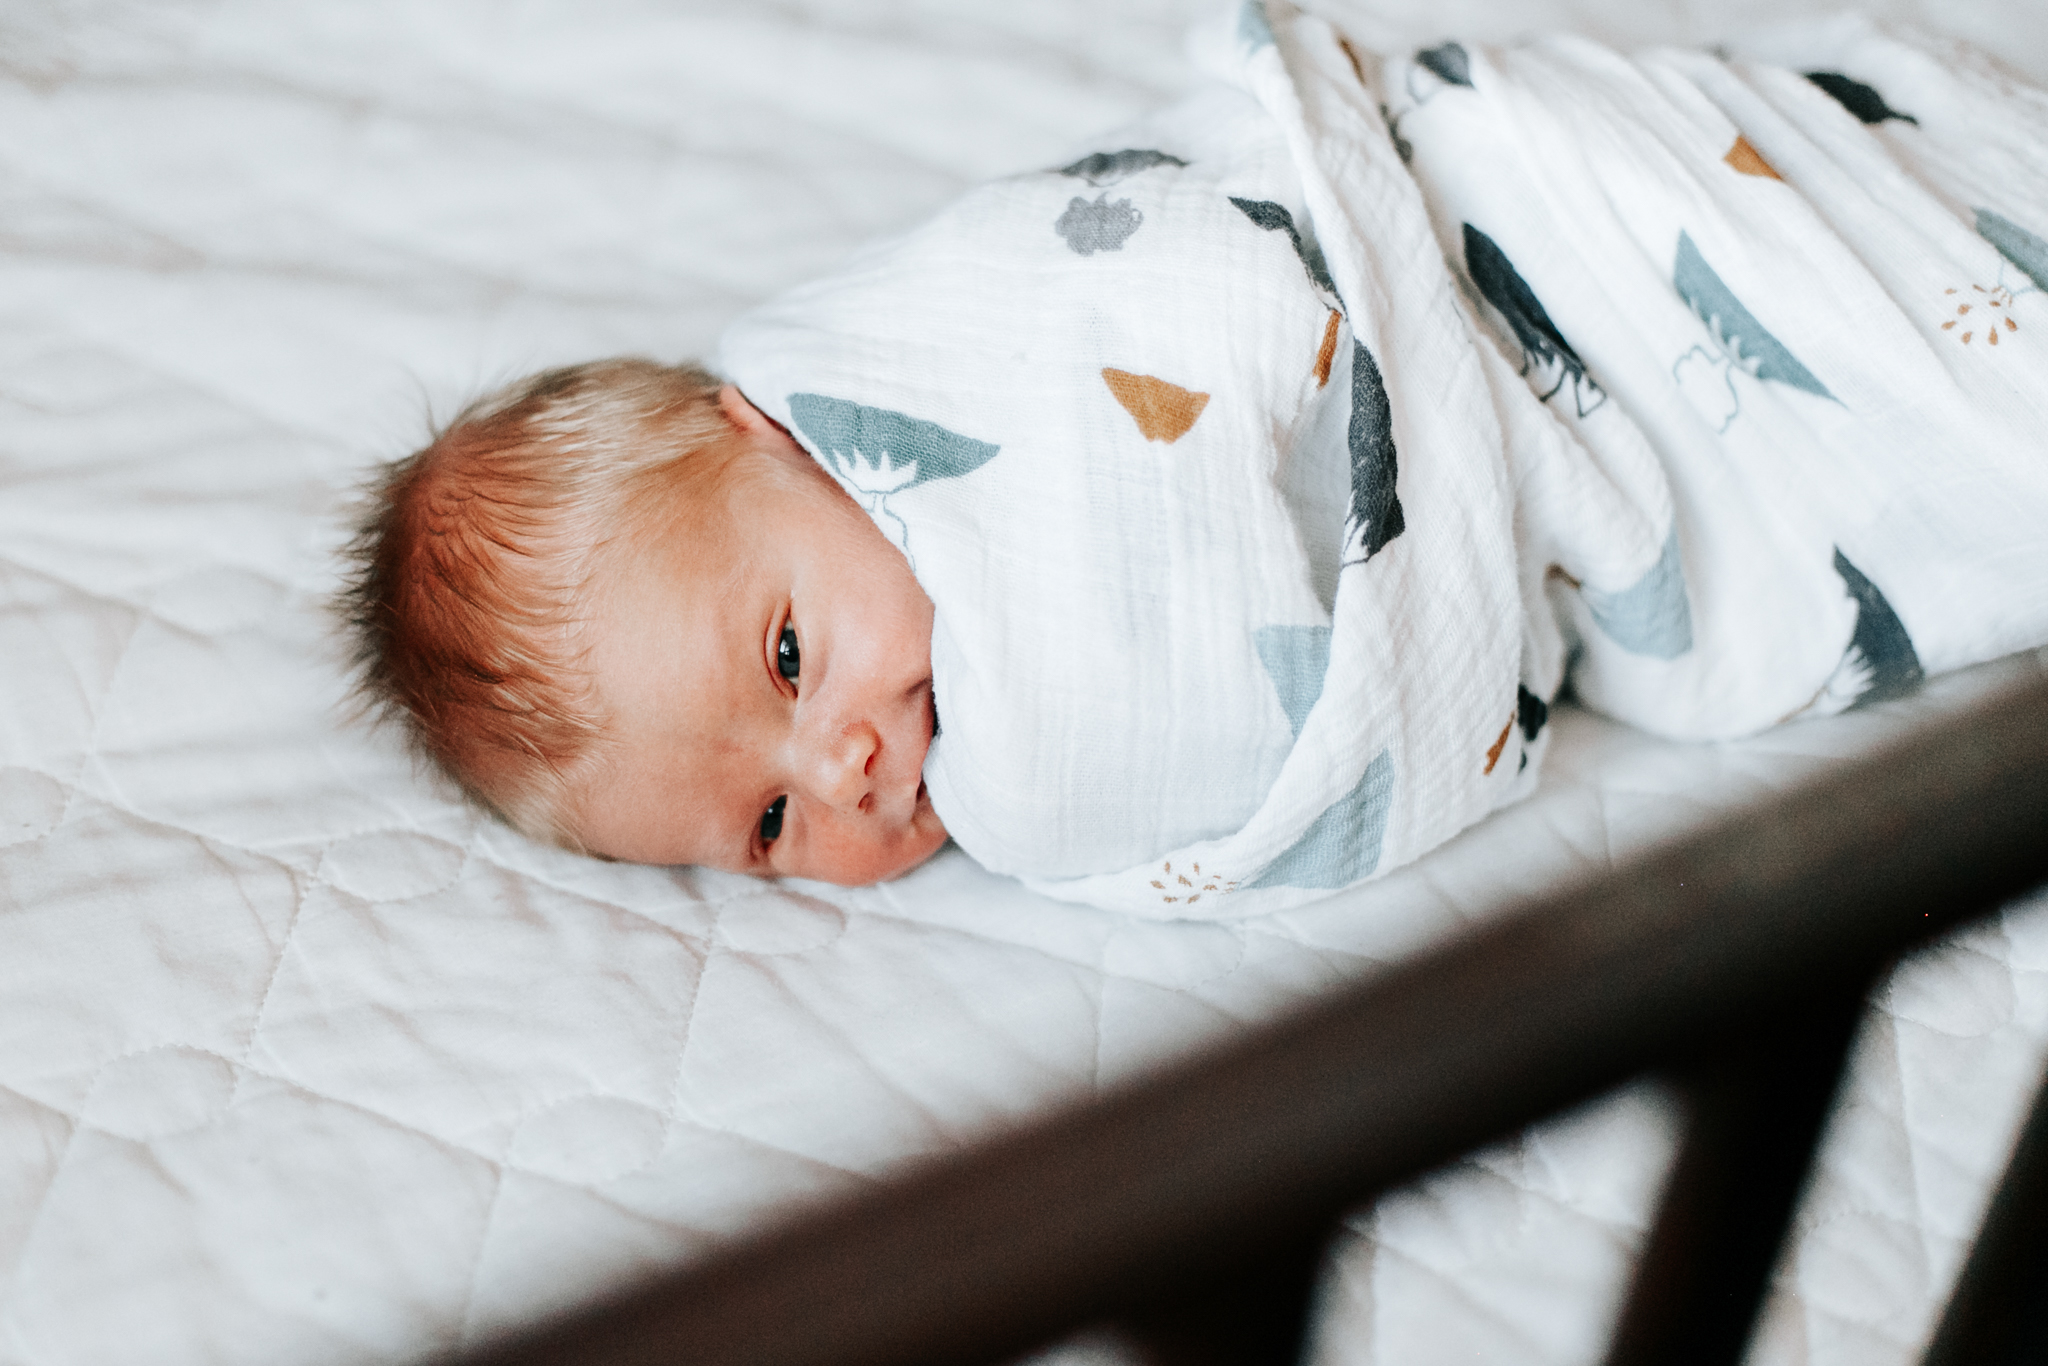 lethbridge-birth-photography-love-and-be-loved-photographer-baby-newborn-karter-image-picture-photo-22.jpg